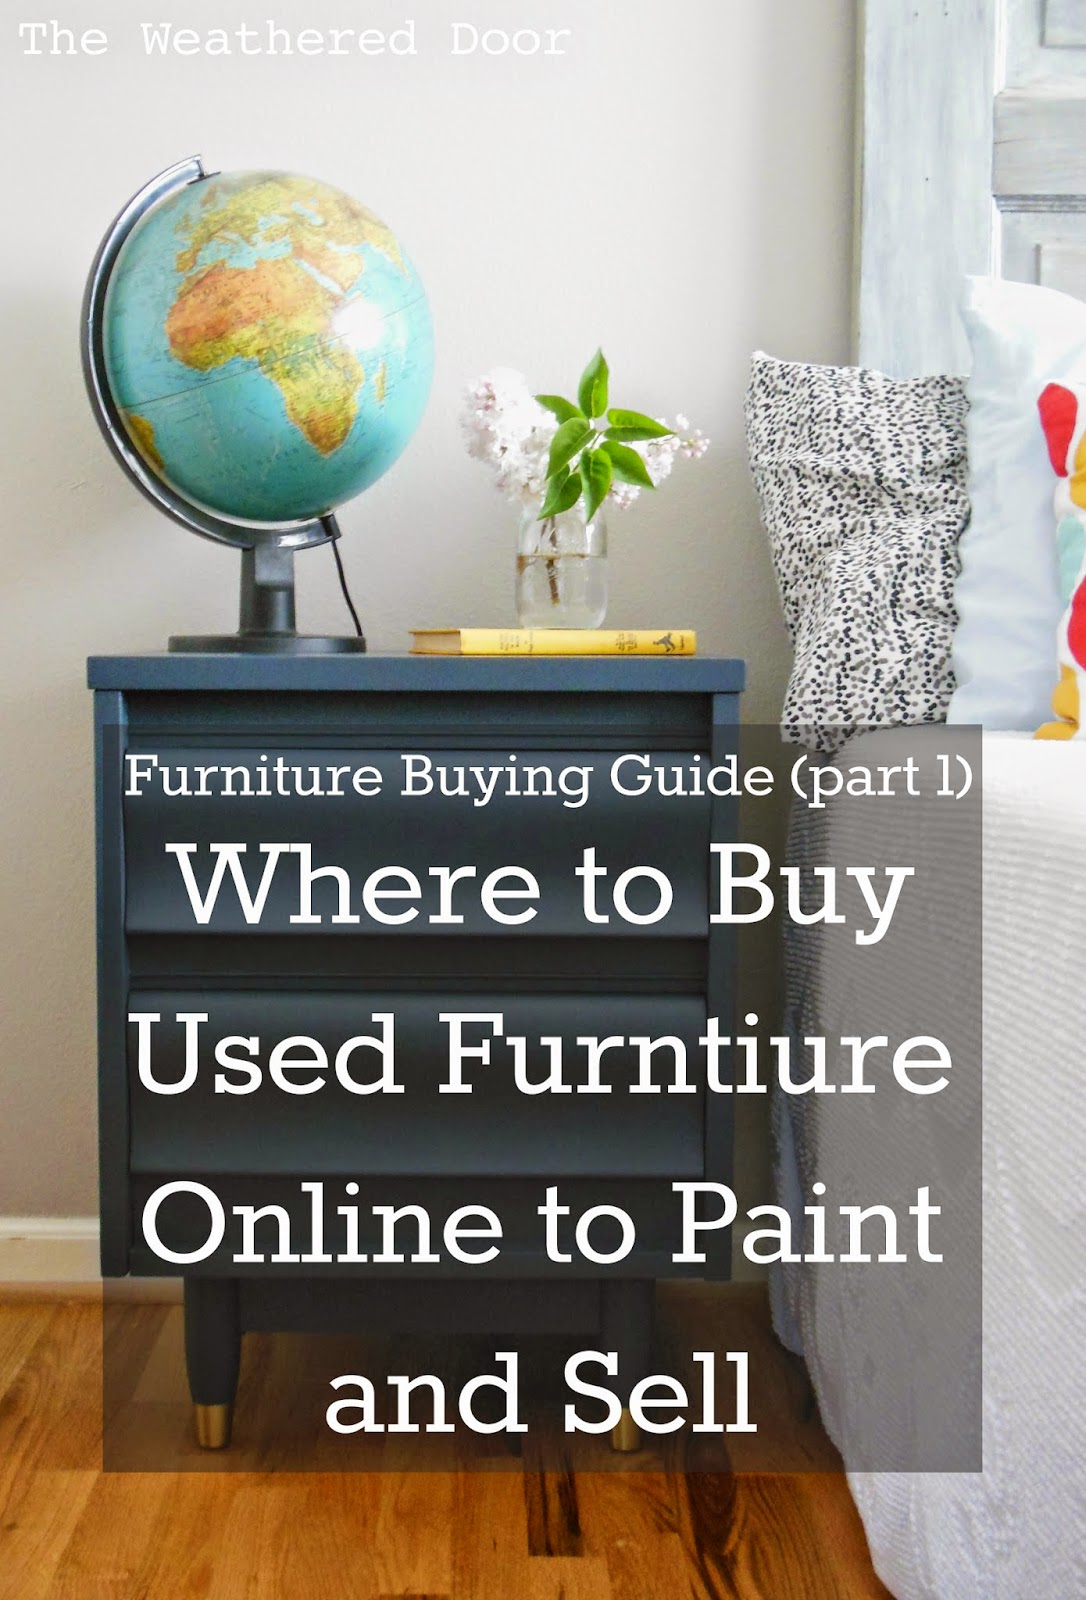 Furniture buying guide where to look for and buy used for Places to sell furniture online